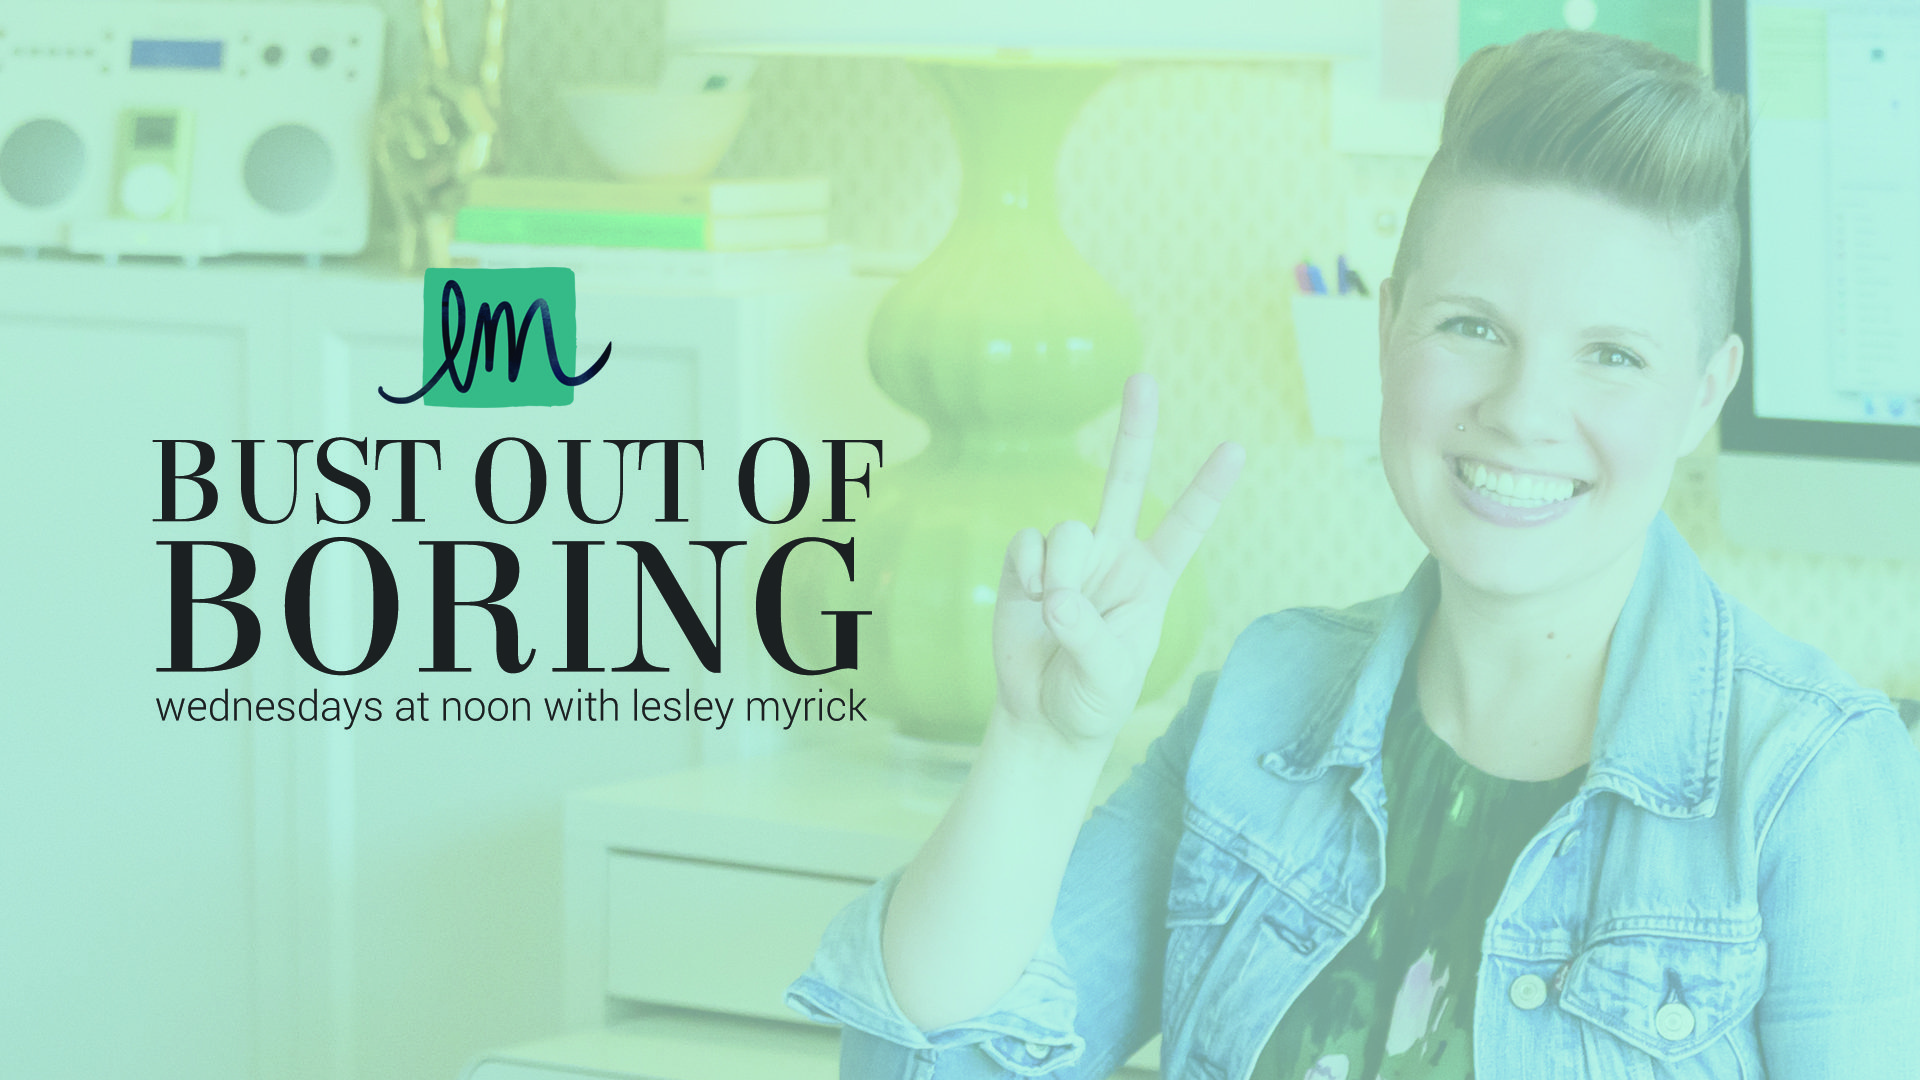 Every Wednesday at noon, get tips to Bust Out Of Boring and create a kickass home you love with interior designer Lesley Myrick!